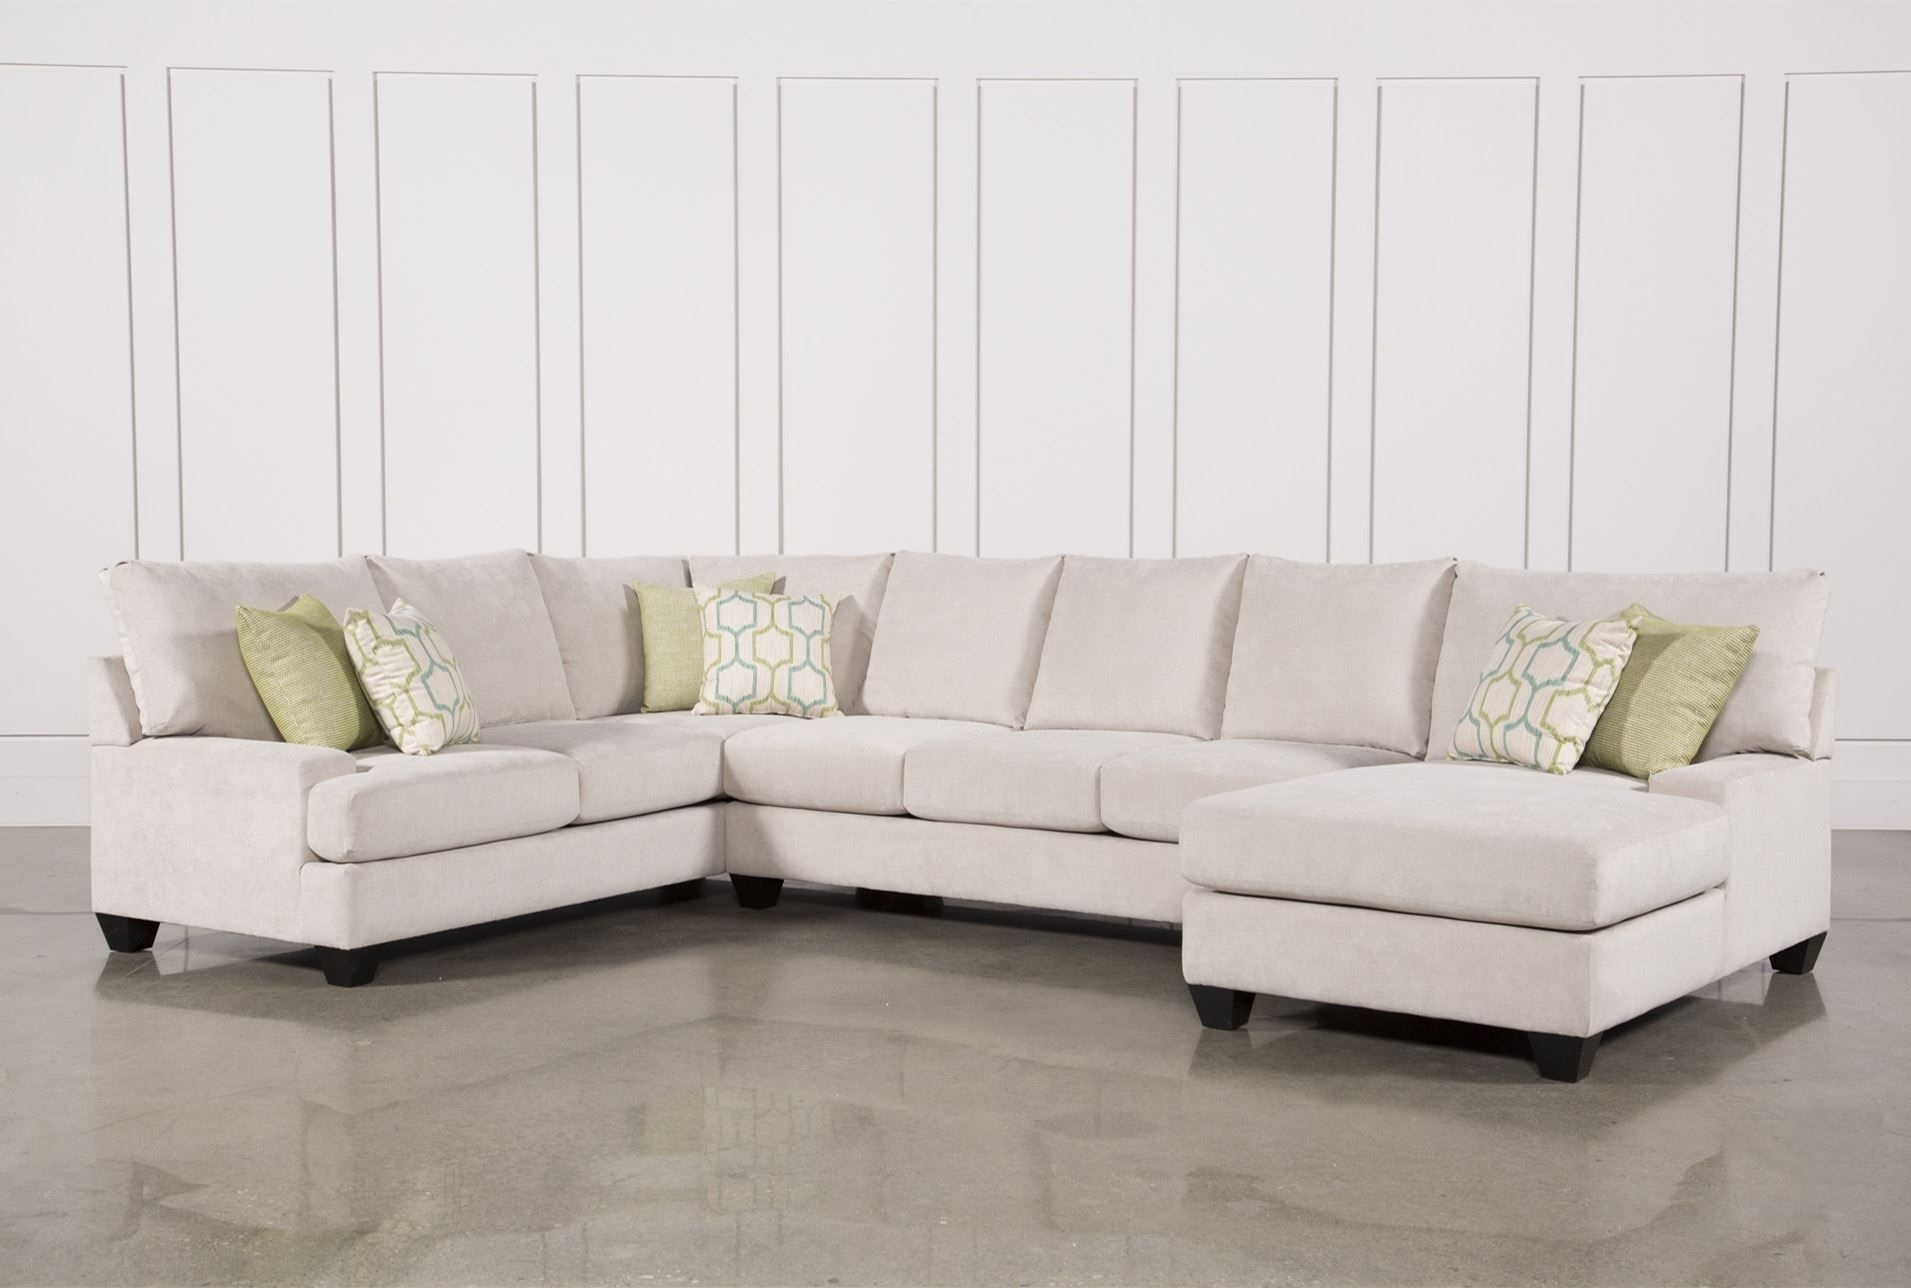 Harper Foam 3 Piece Sectional W/raf Chaise | Family Room | Pinterest In Turdur 2 Piece Sectionals With Raf Loveseat (Image 4 of 25)